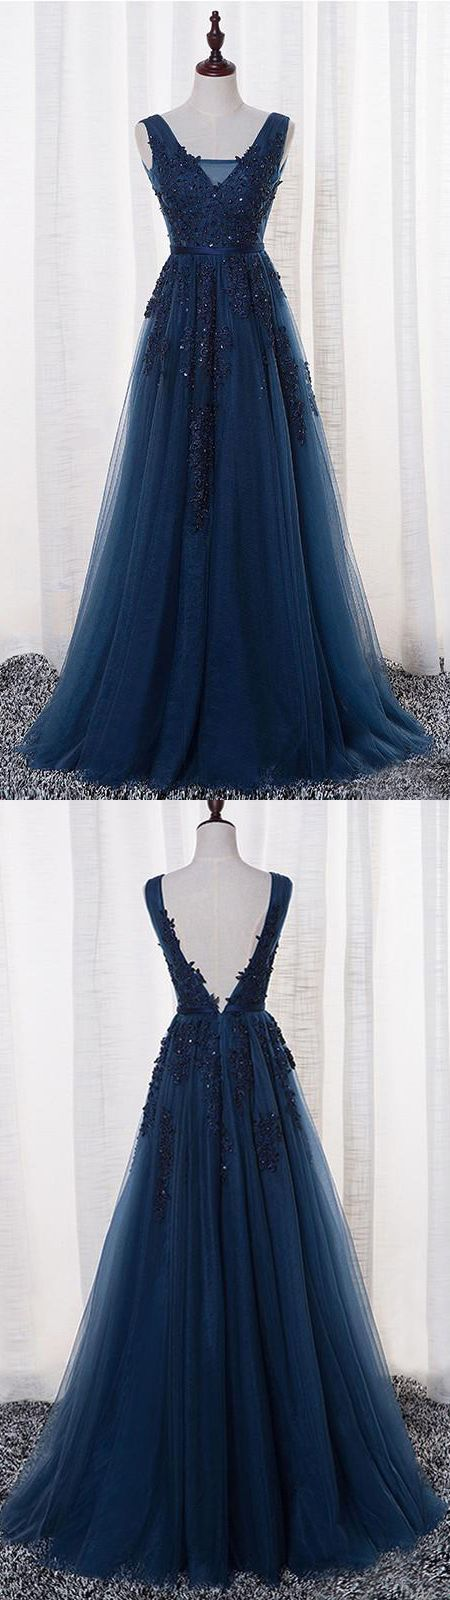 New Arrival A-Line V-Neck Sleeveless Navy Blue Tulle Long Prom Dress